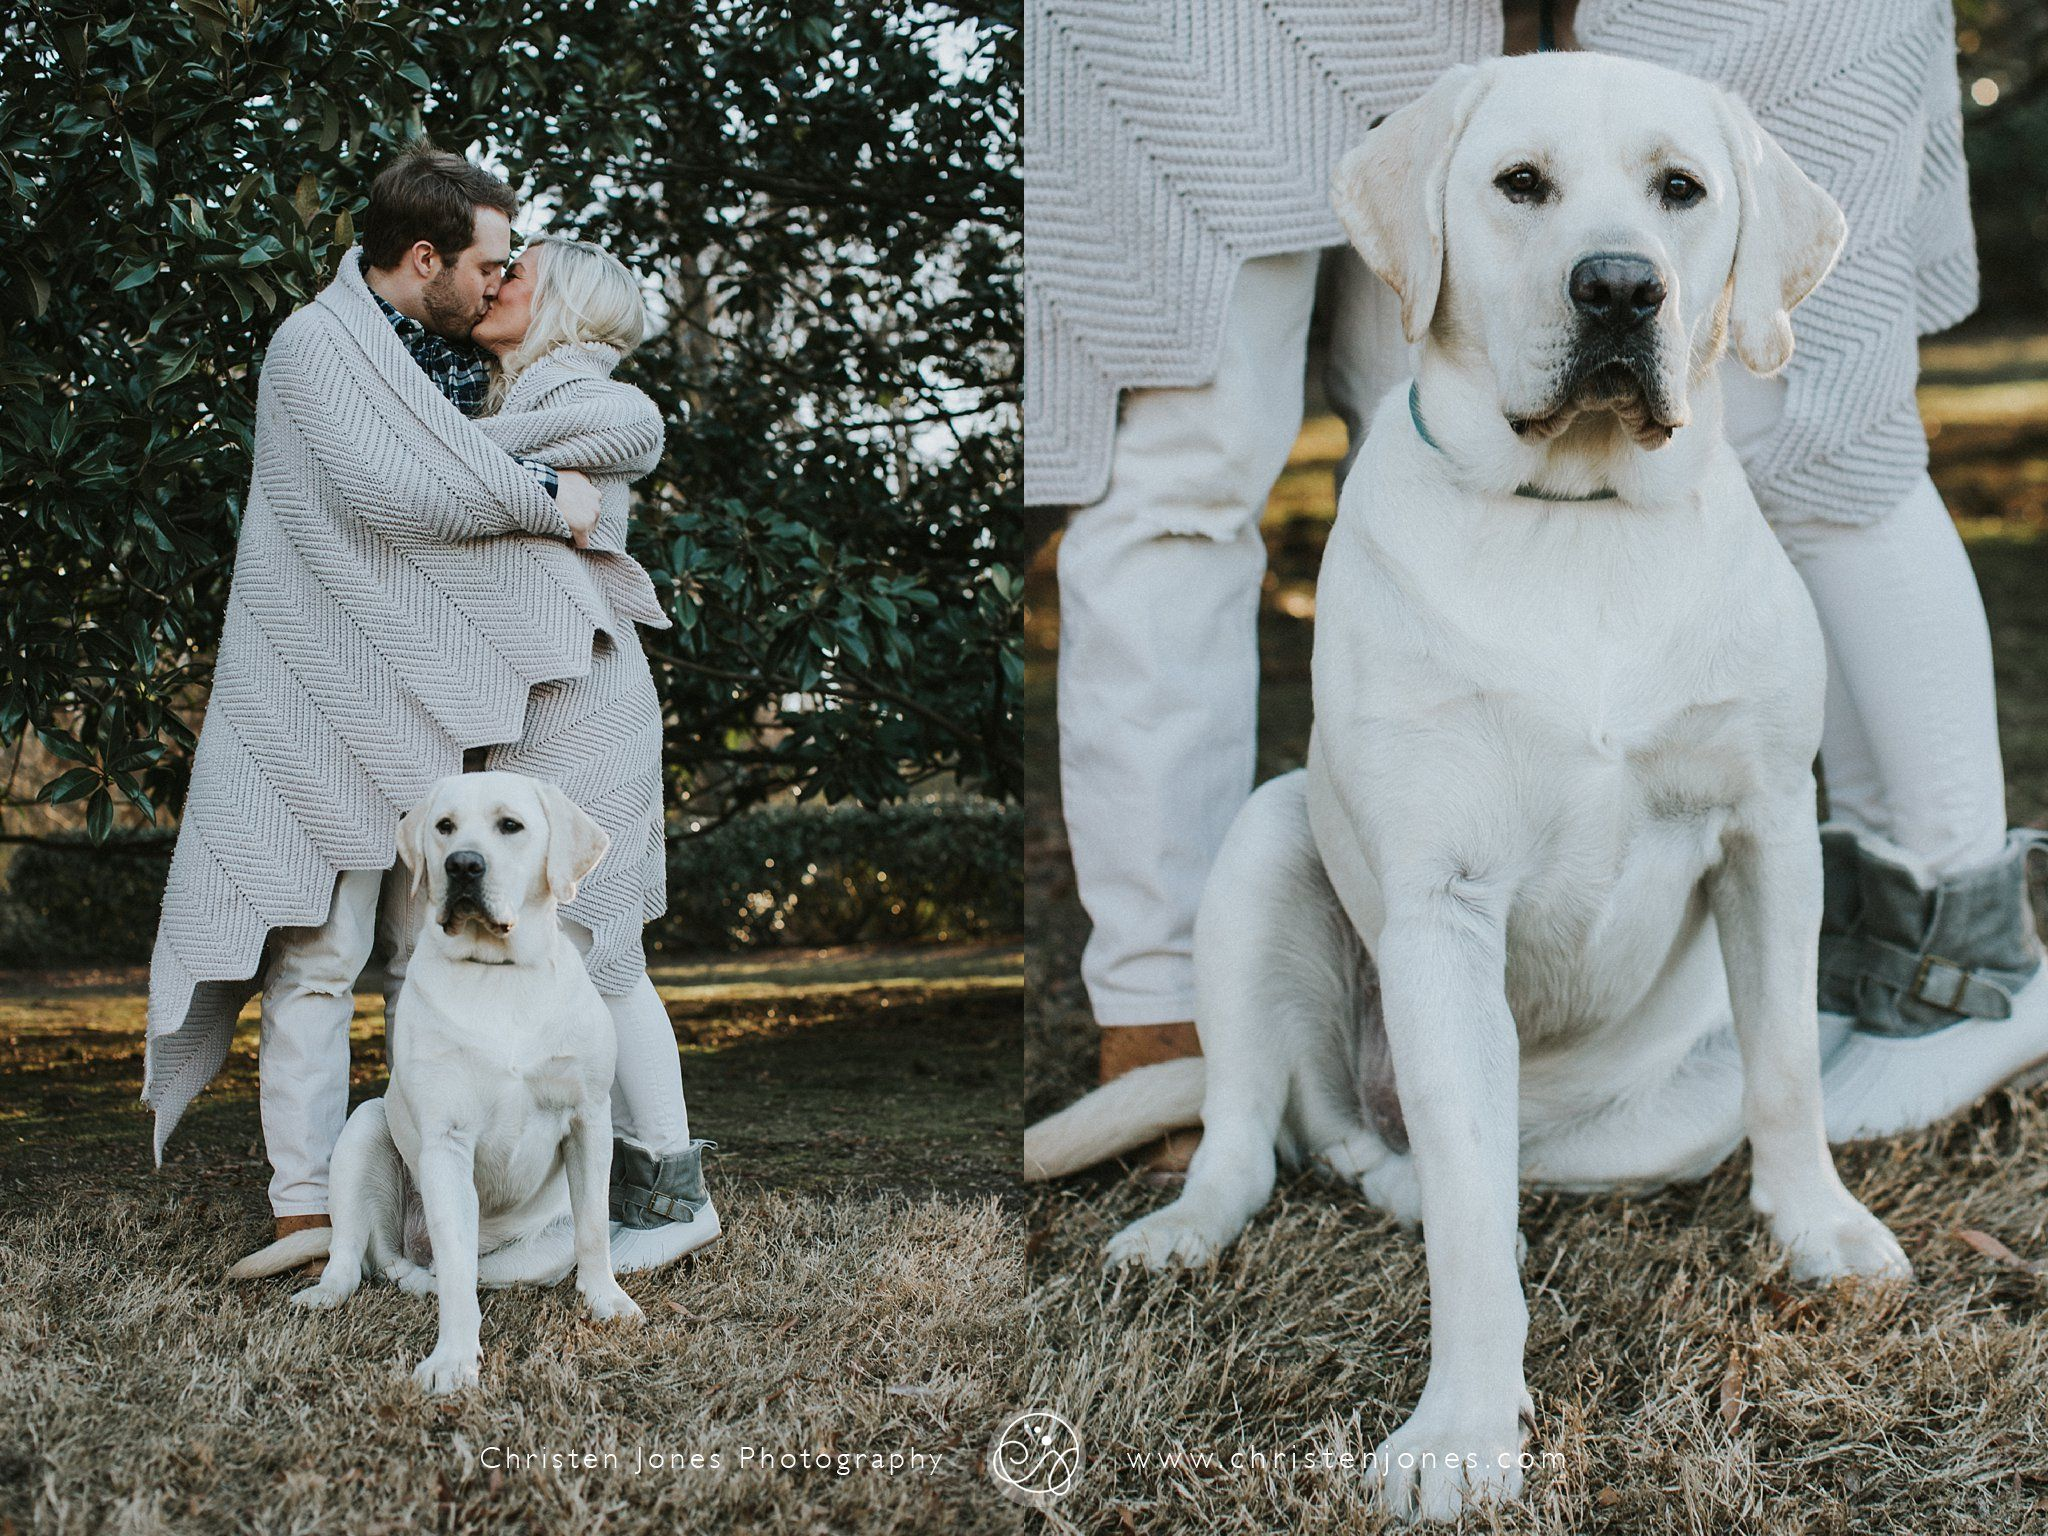 Outdoor Winter Engagement Photo Session || With Dog and Blanket || White || Memphis Engagement Photographer || Christen Jones Photography